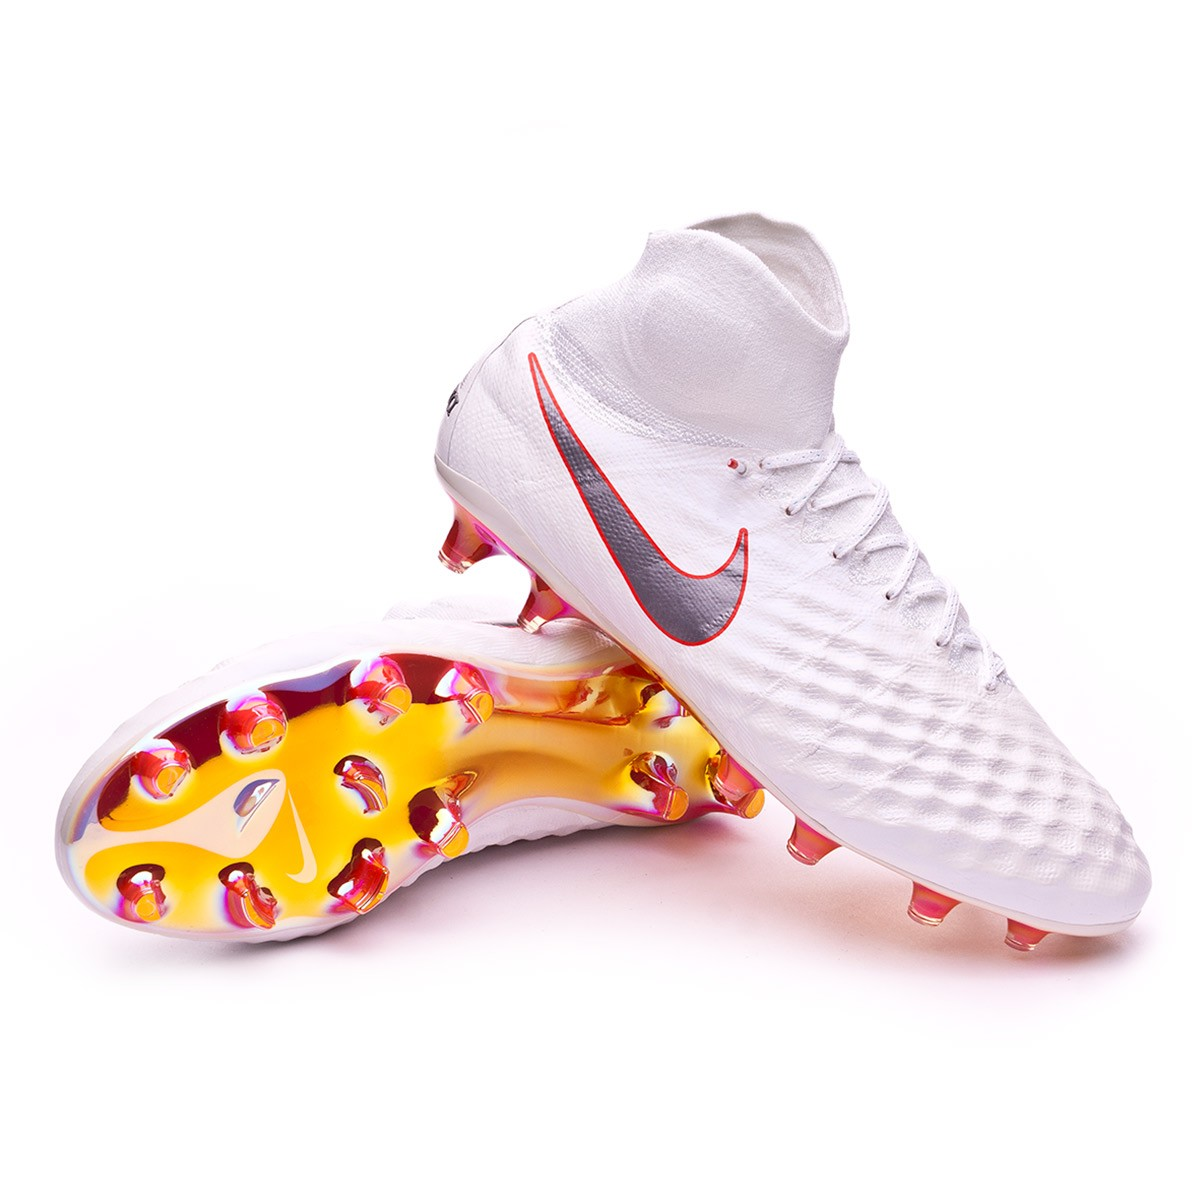 Bota Magista Obra II Elite DF FG White-Metallic cool grey-Light crimson